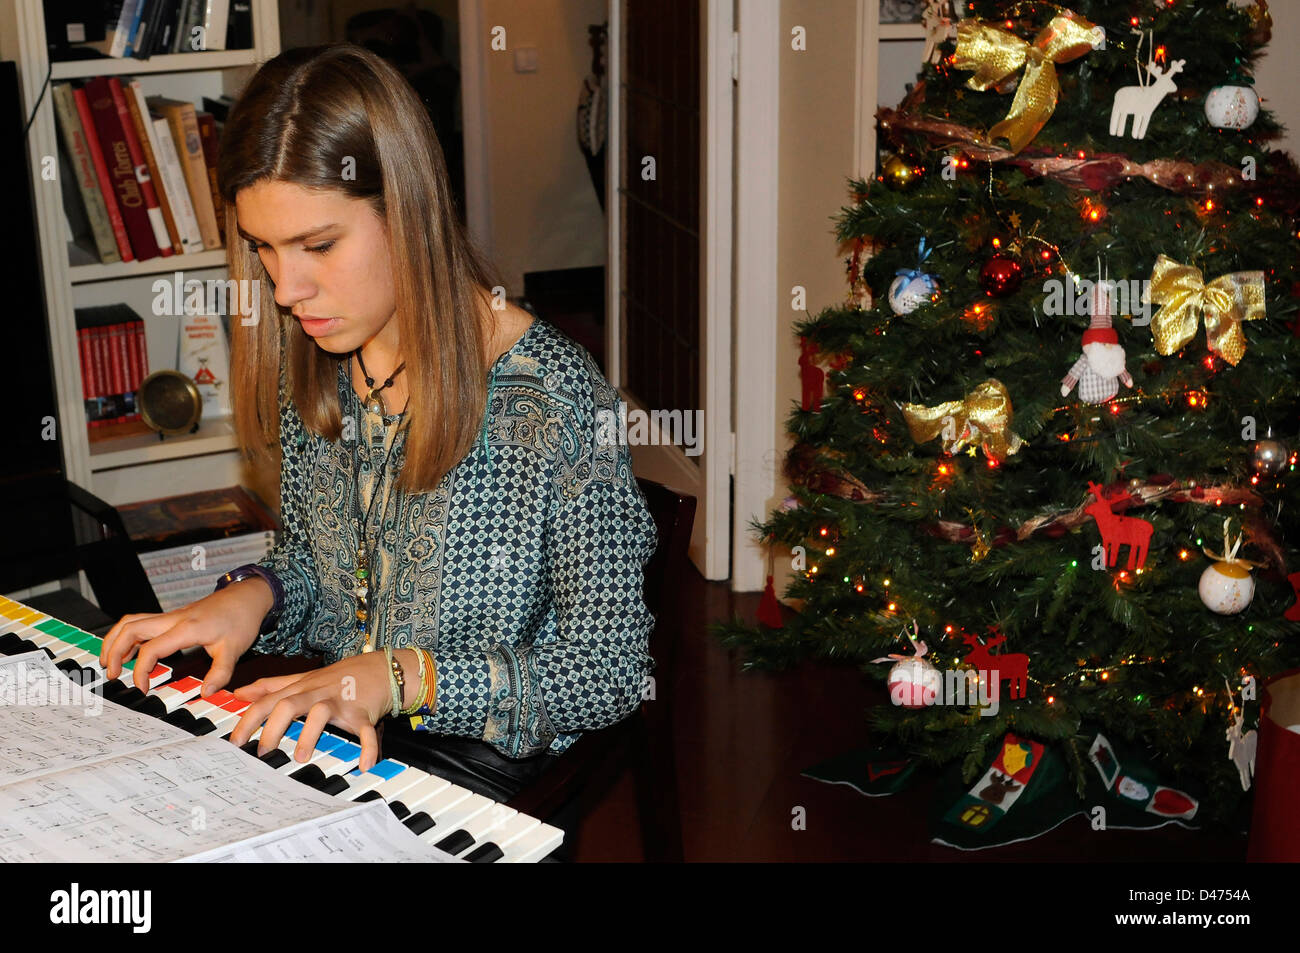 Young lady playing electric piano at home on Christmas week, Christmas tree on the background - Stock Image